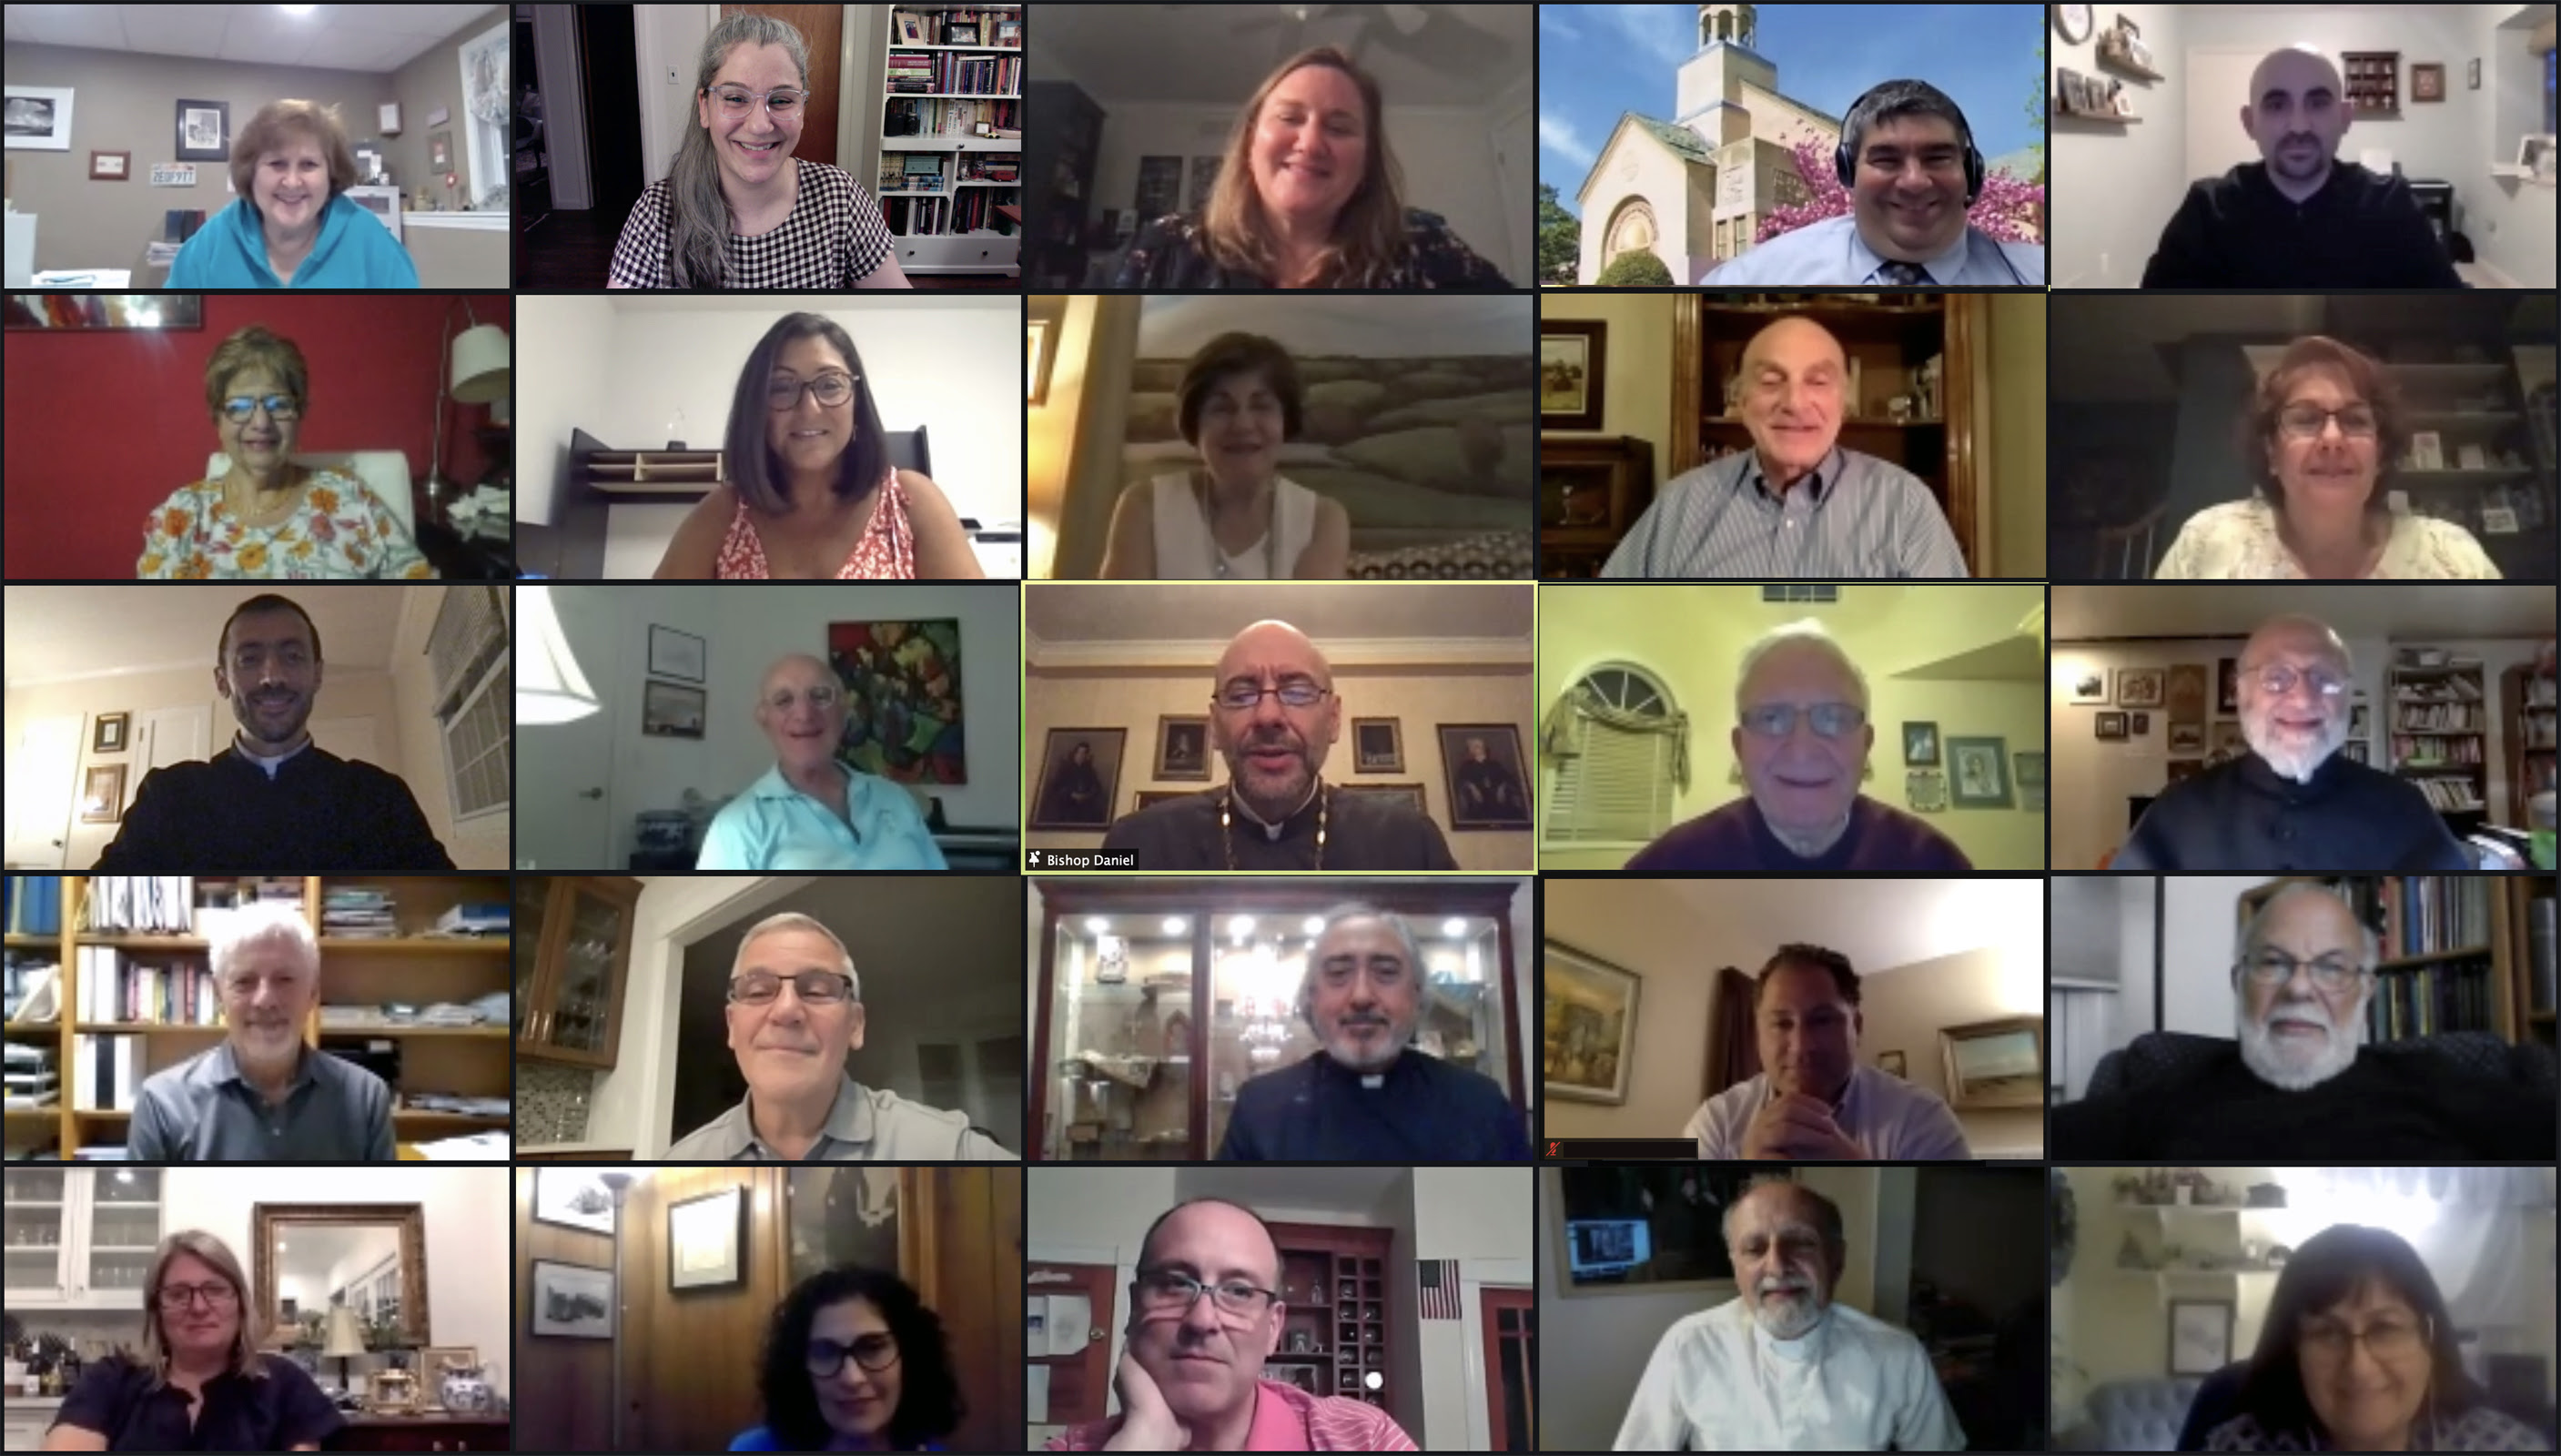 2021 virtual diocesan assembly (May 25 session)